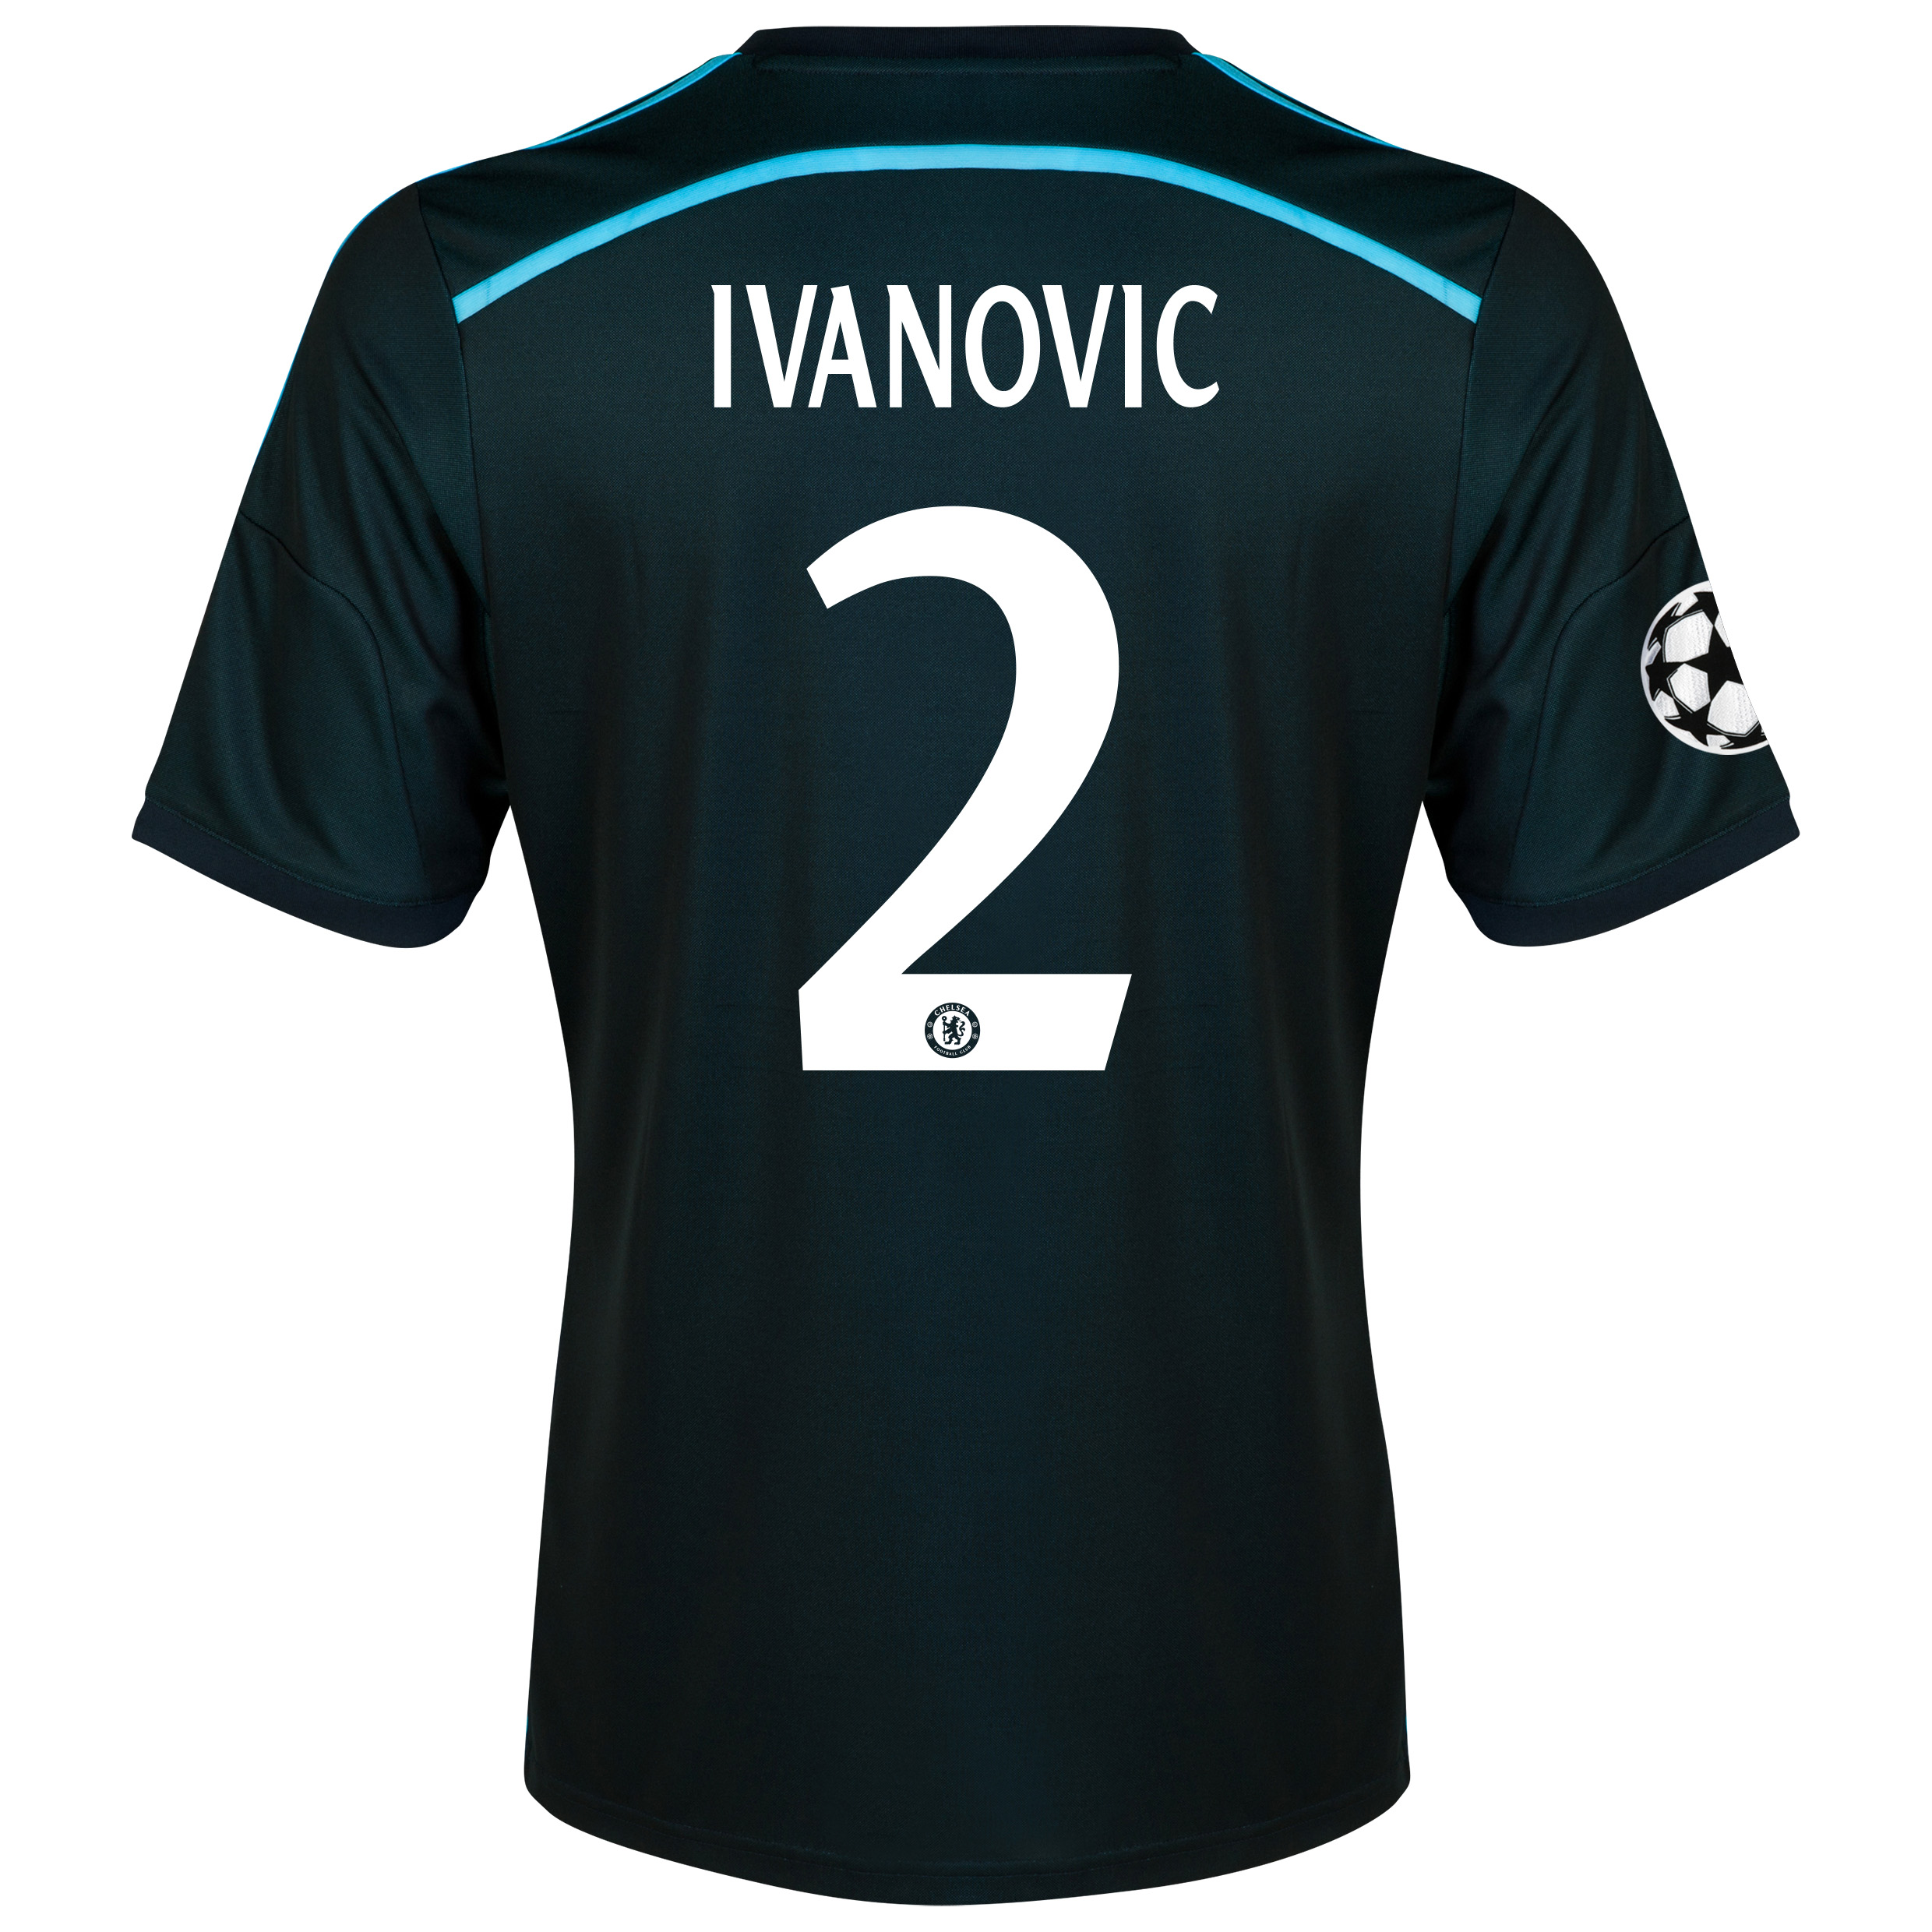 Chelsea UEFA Champions League Third Shirt 2014/15 with Ivanovic 2 printing